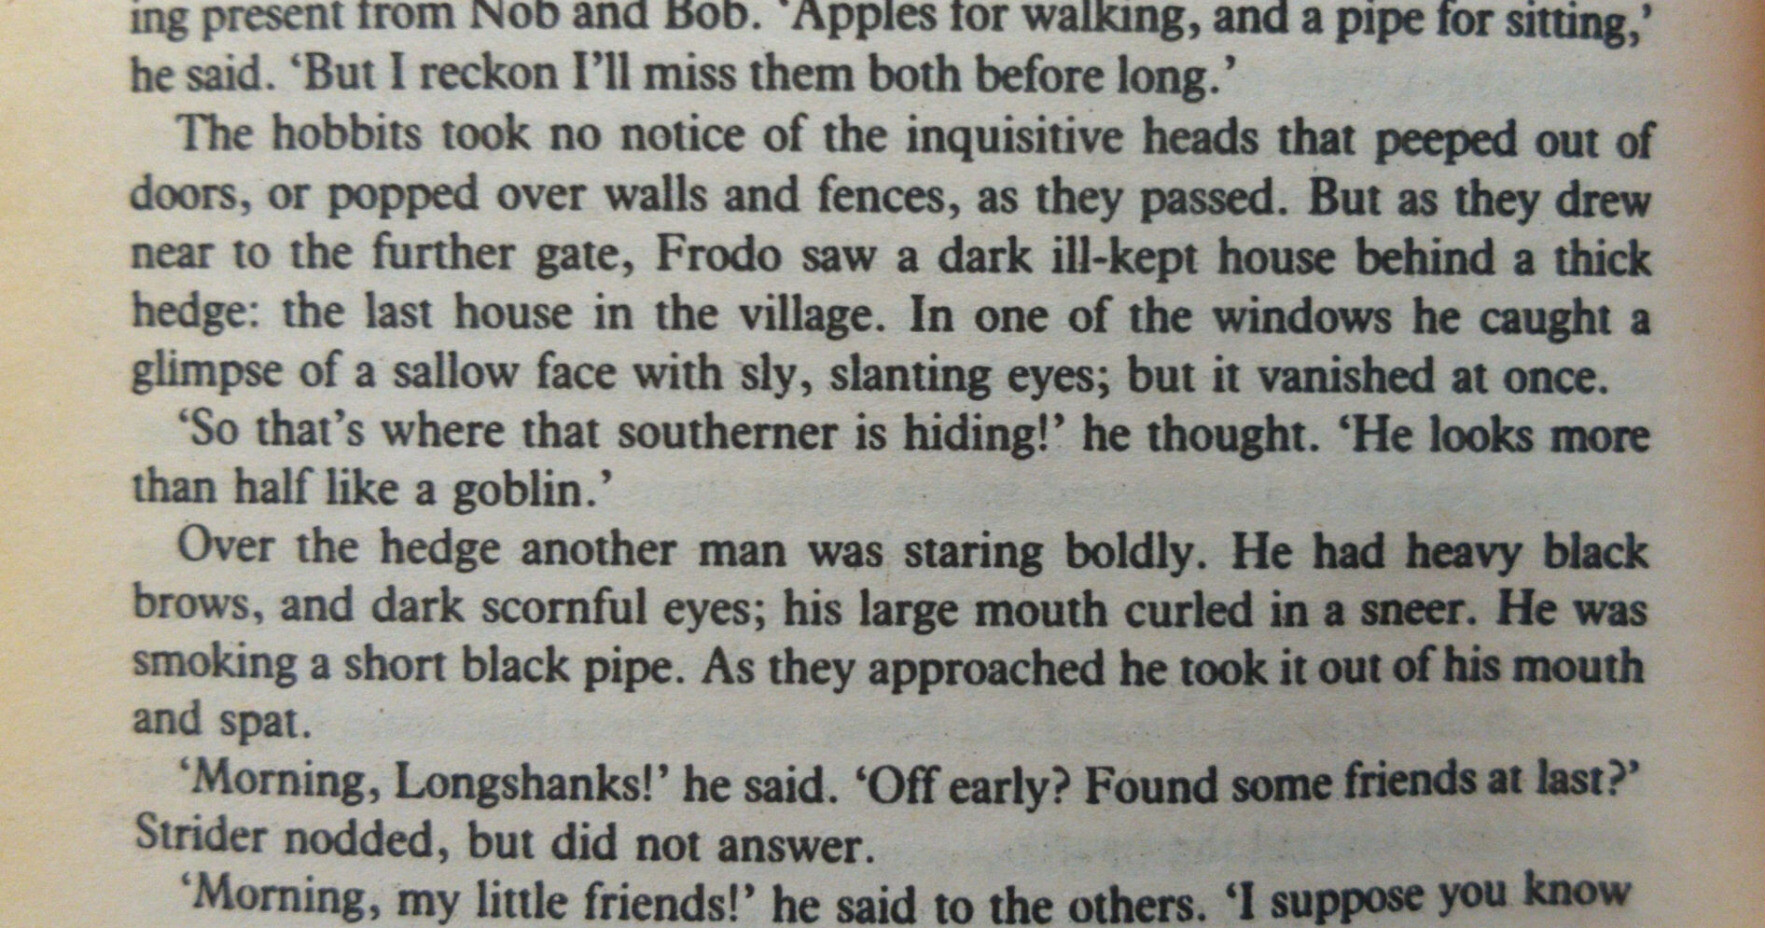 """""""The hobbits took no notice of the inquisitive heads taht peeped out of doors, or popped over walls and fences, as they passed. But as they drew near to the further gate, Frodo saw a dark ill-kept house behind a thick hedge: the last house in the village. In one of the windows he caught a glimpse of a sallow face with sly, slanting eyes; but it vanished at once.<br>'So that's where that southerner is hiding!' he thought. 'He looks more than half like a goblin.'"""""""